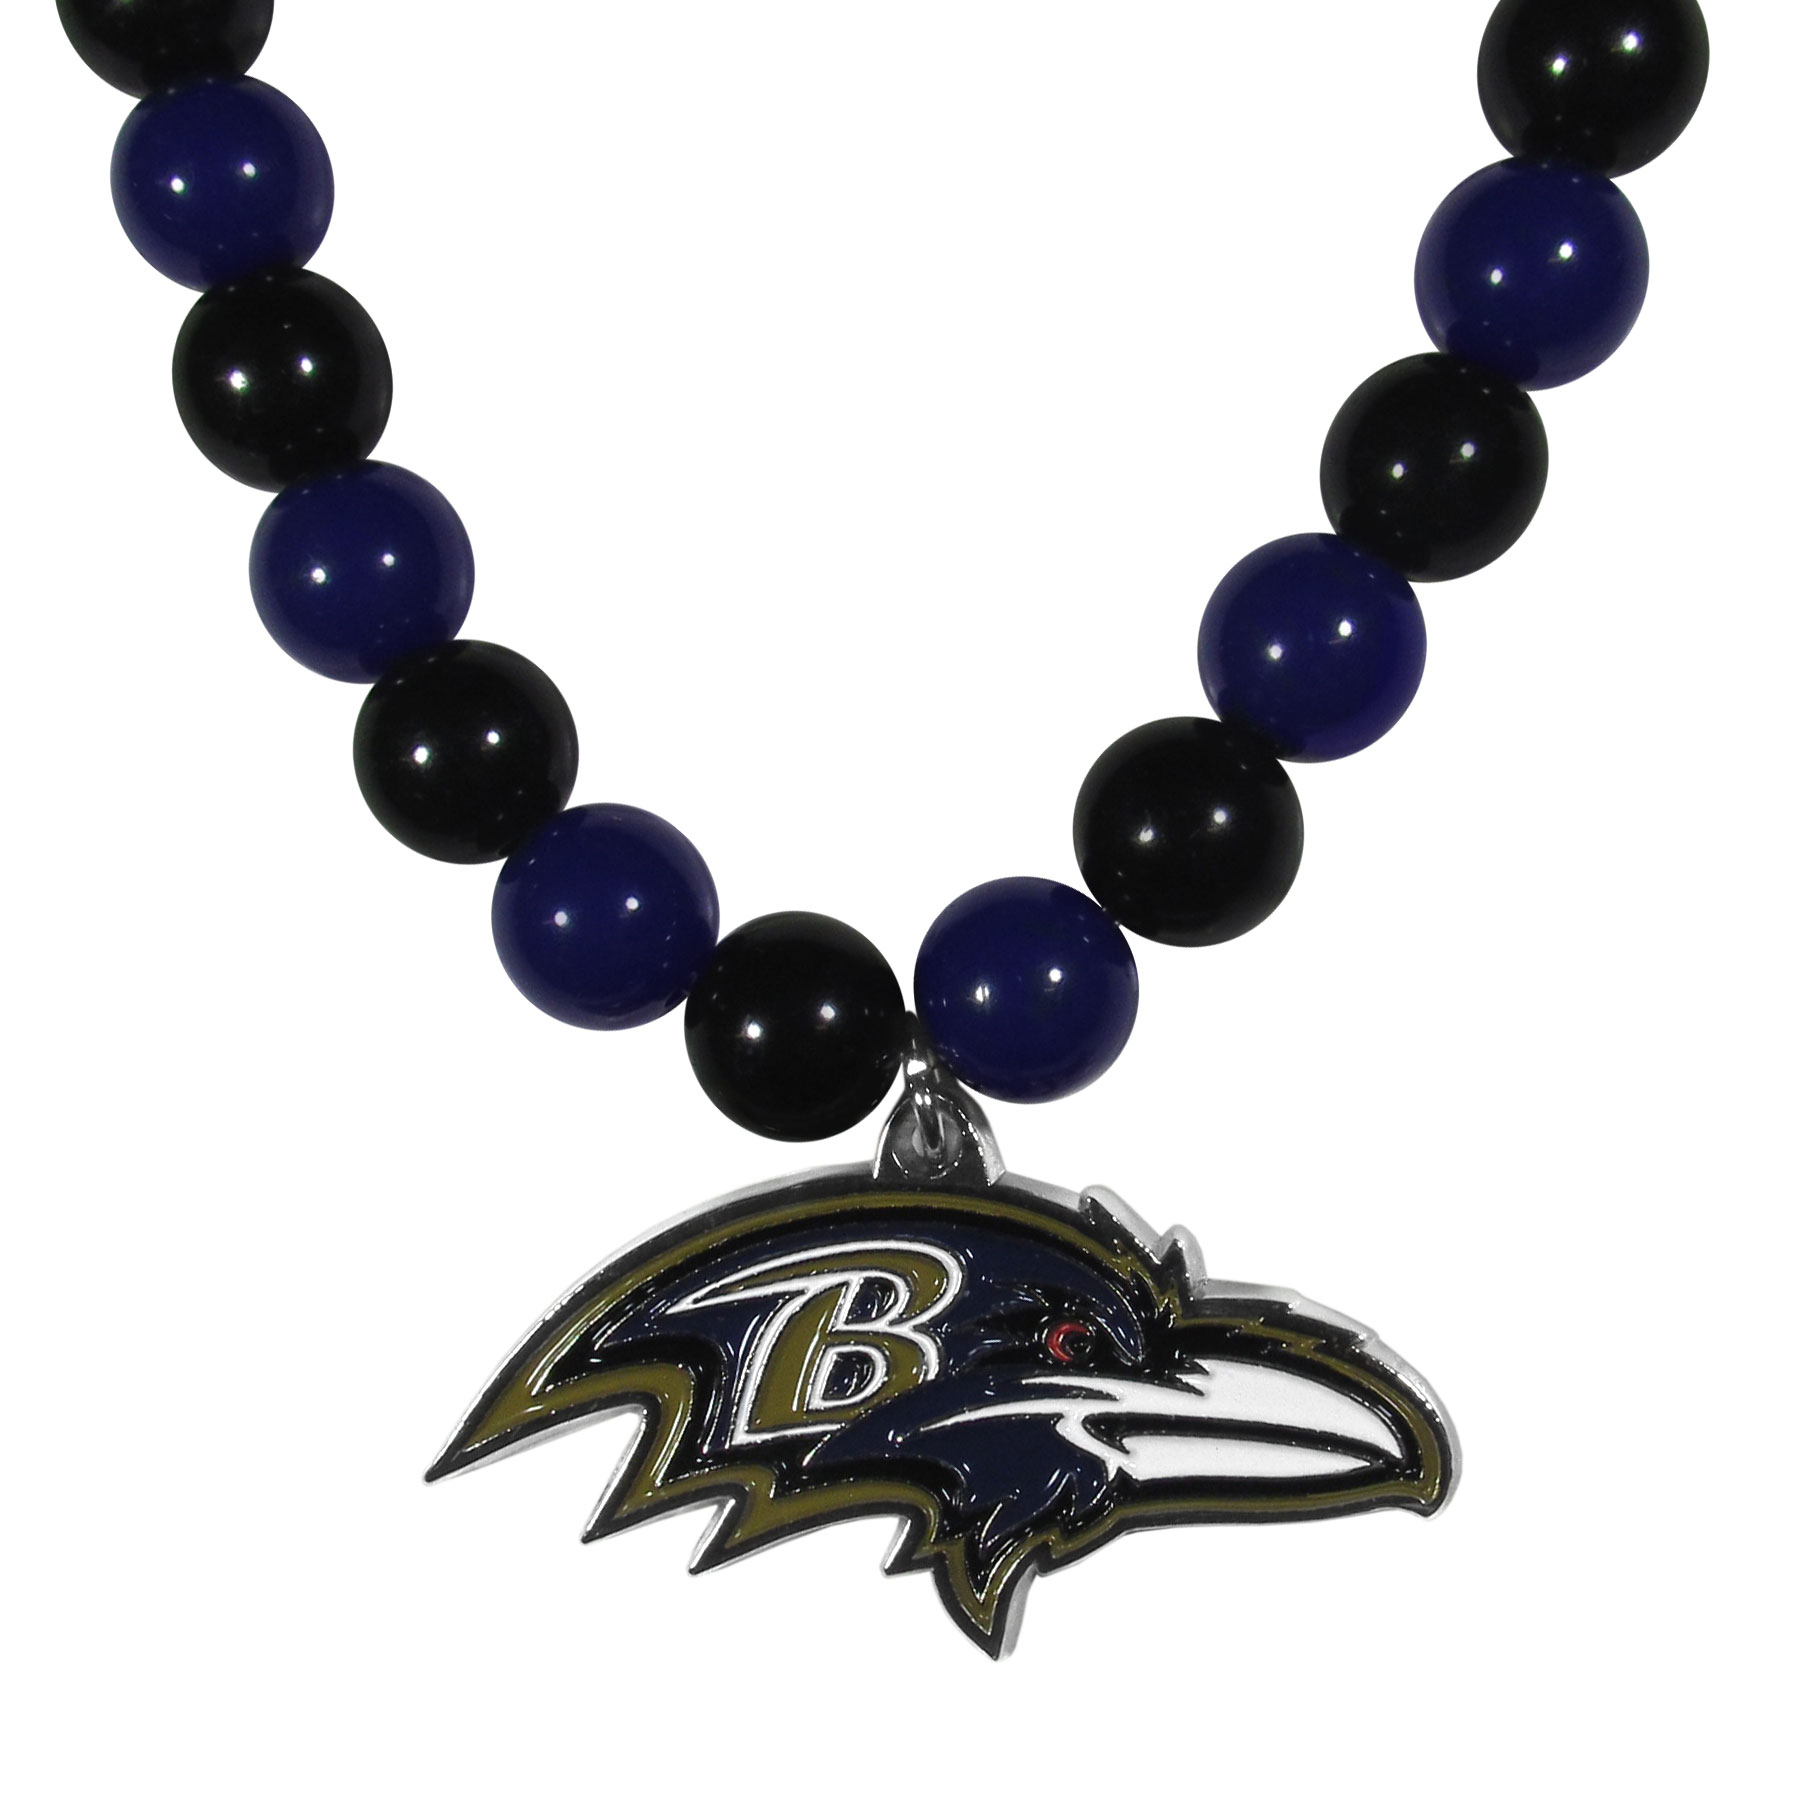 Baltimore Ravens Fan Bead Necklace - Make a big statement with our fan bead necklaces! These brightly colored necklace have a 24 inch string of alternating colored beads with an extra large, high-polish Baltimore Ravens pendant.